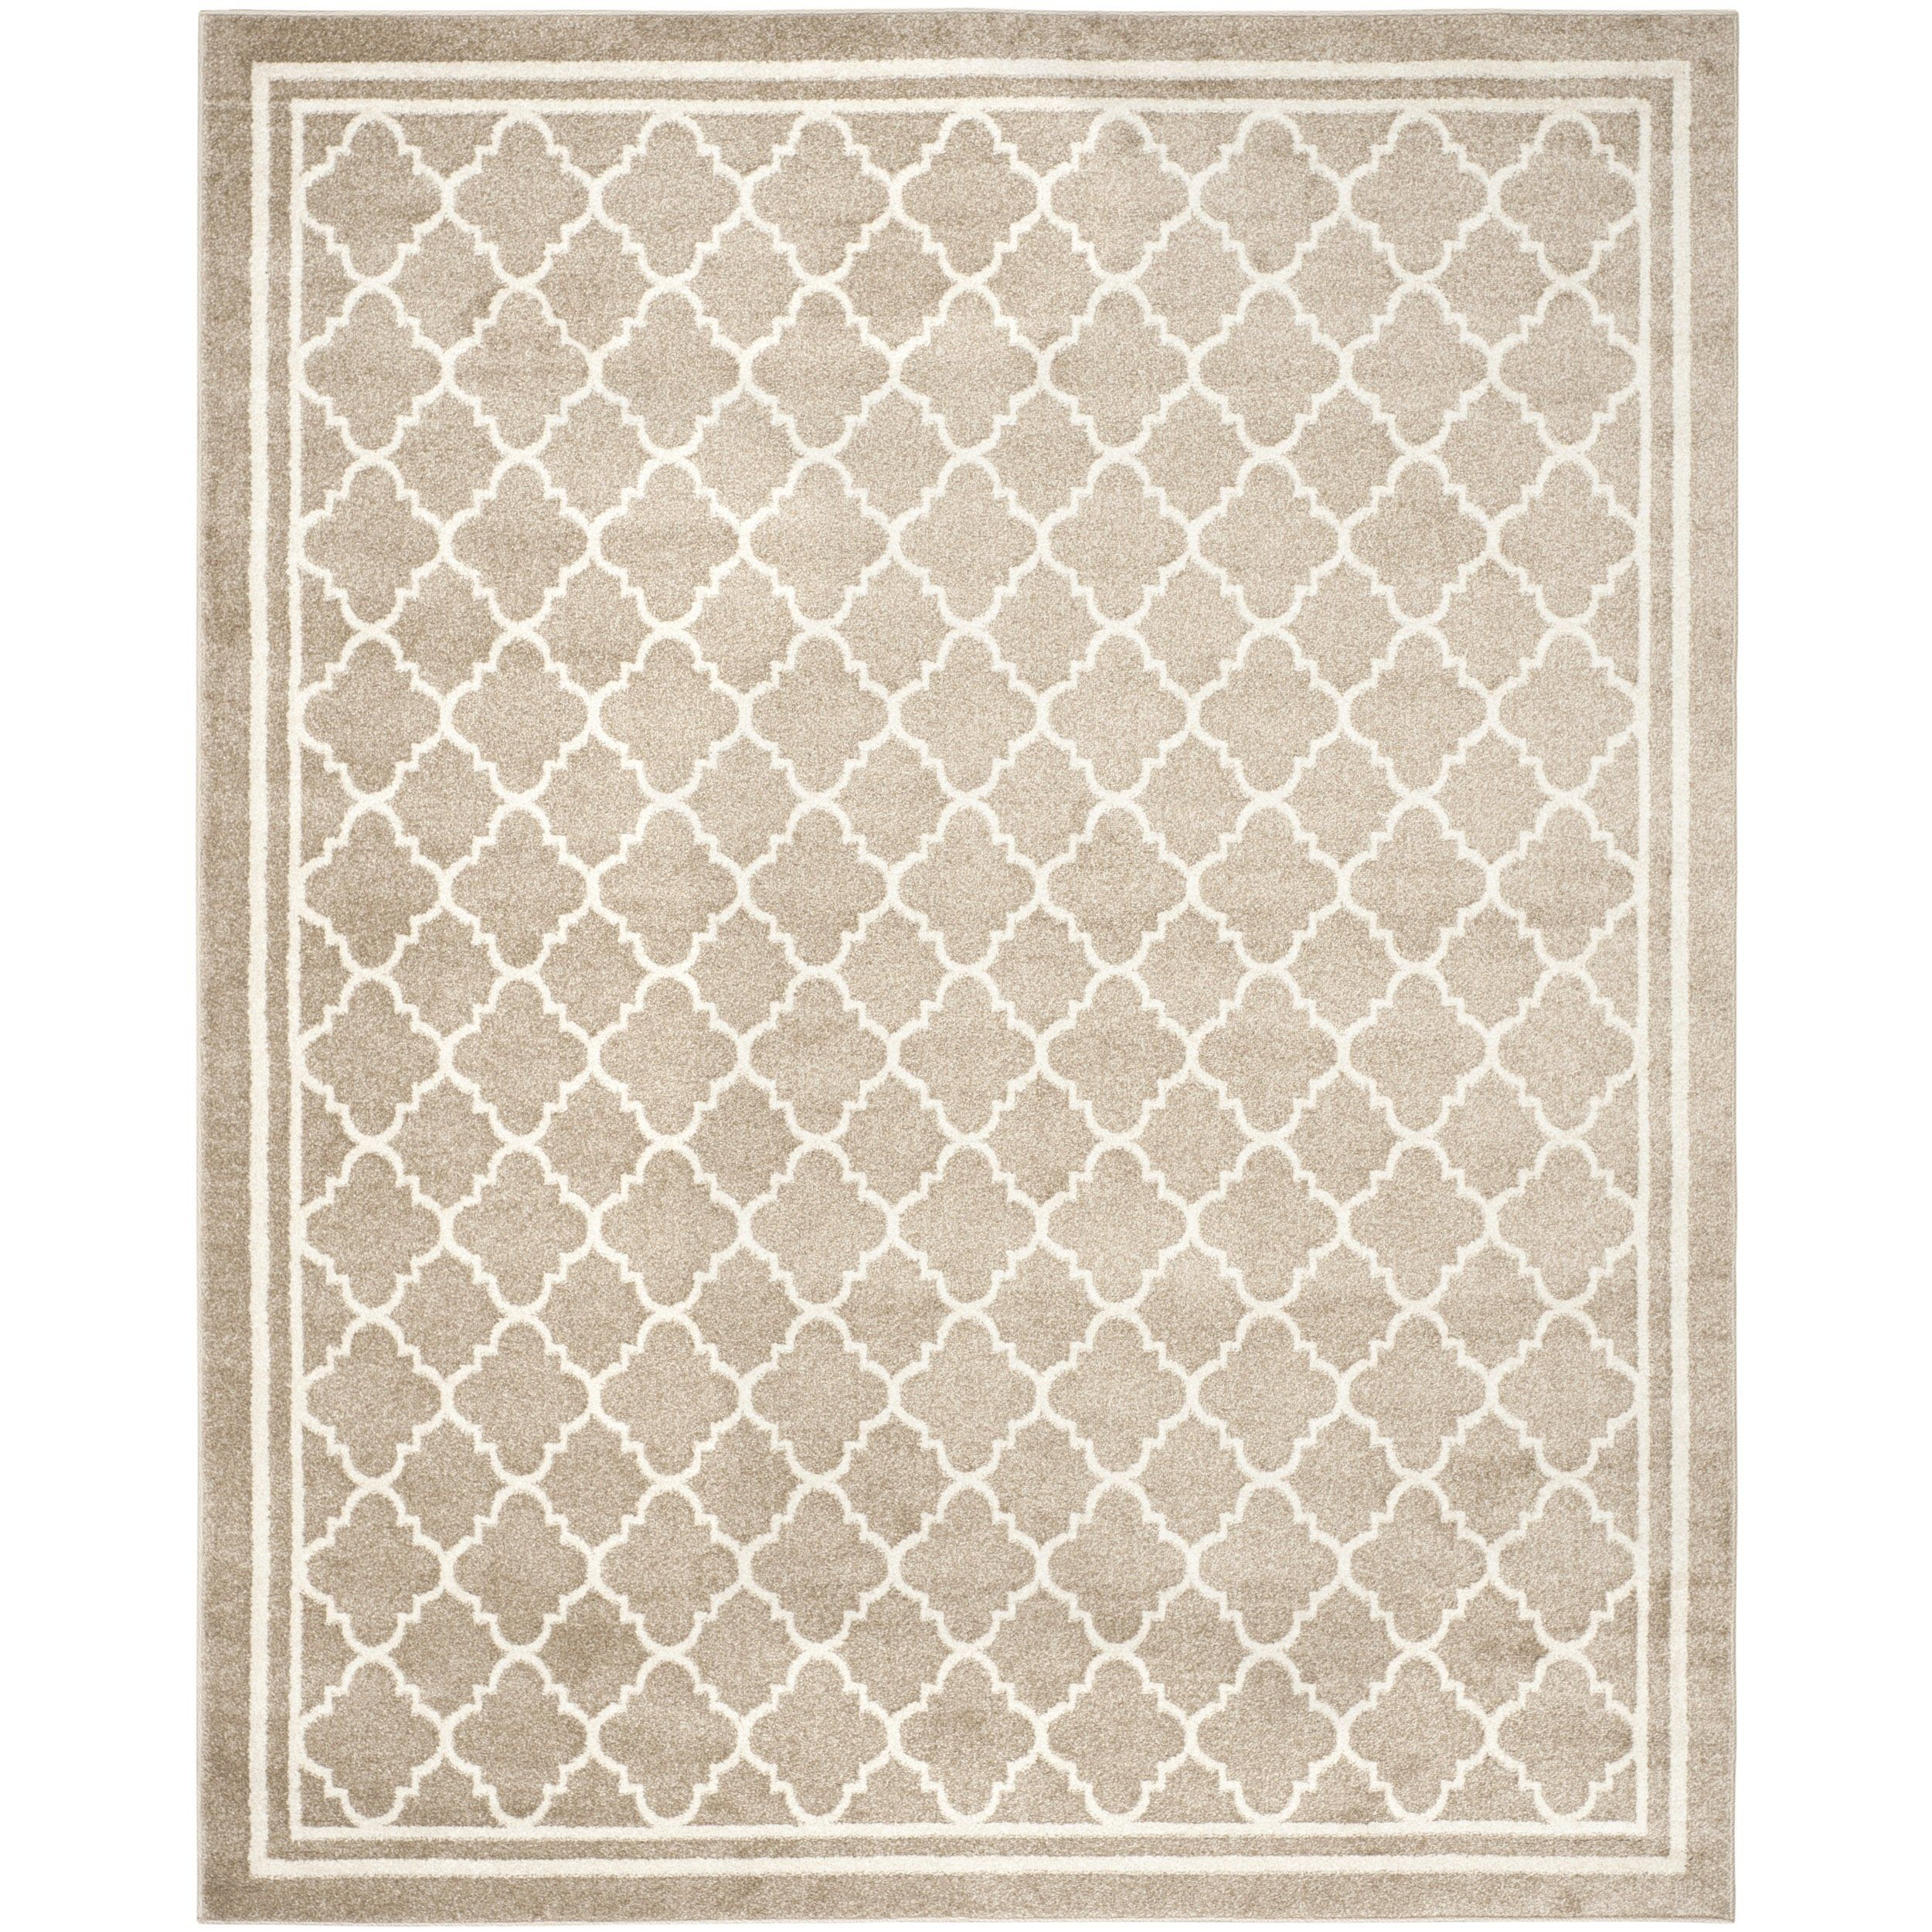 Safavieh Amherst Collection Amt422s Wheat And Beige Indoor Outdoor Area Rug 10 X